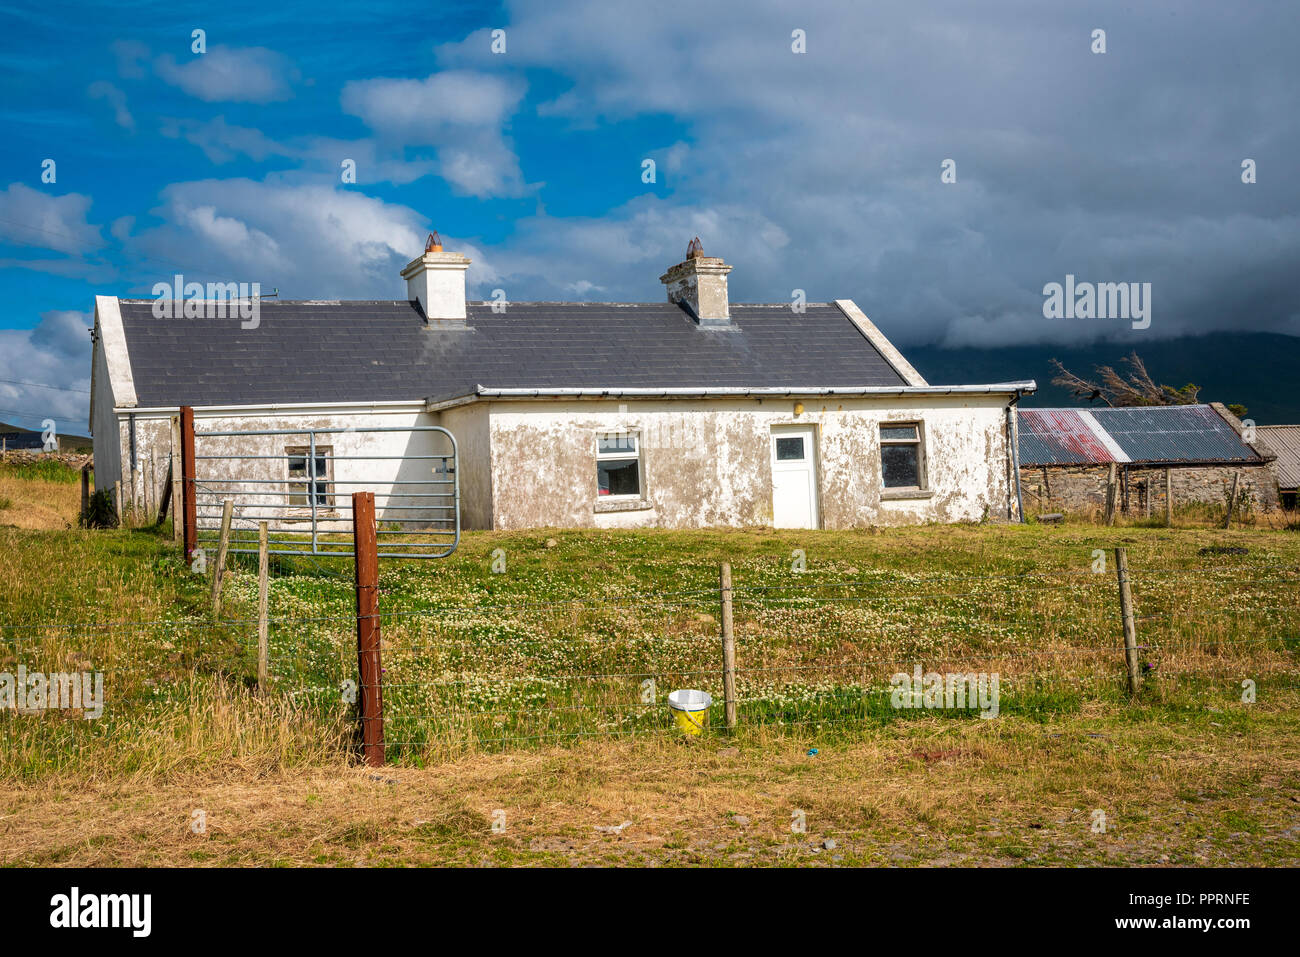 An old abandoned farmhouse on a hill in County Mayo, Ireland. - Stock Image